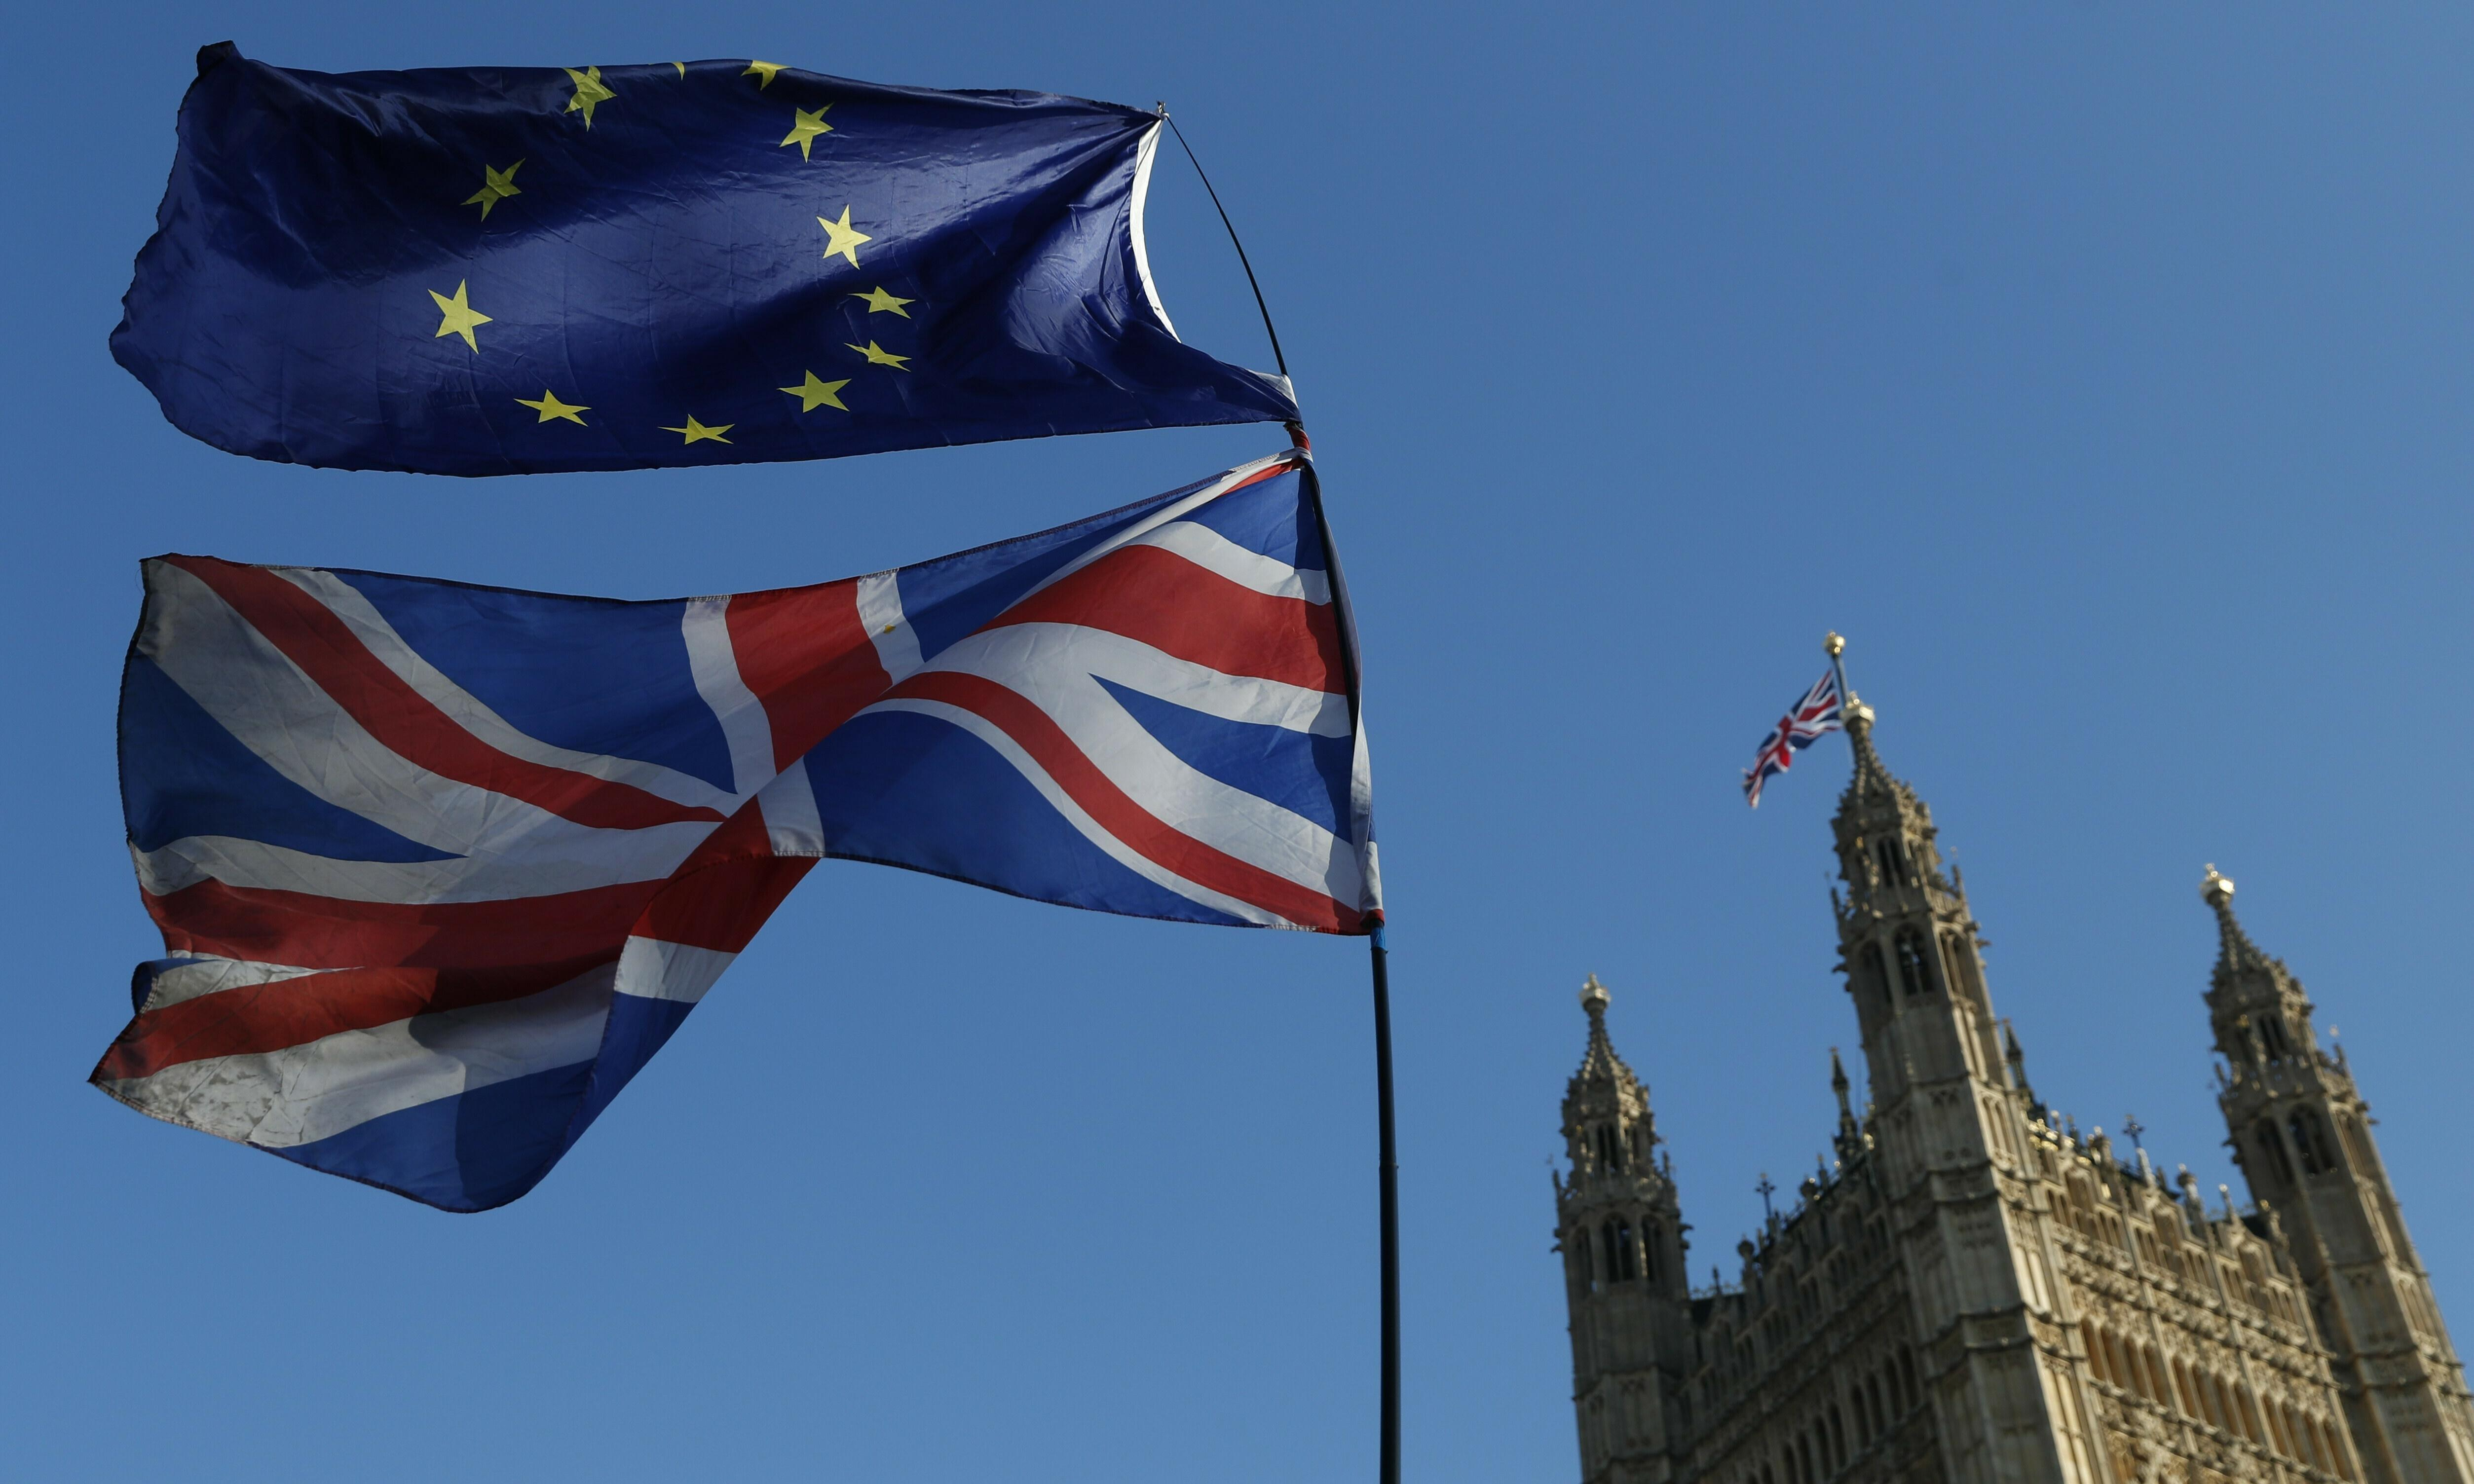 Only our compromise can break the Brexit impasse